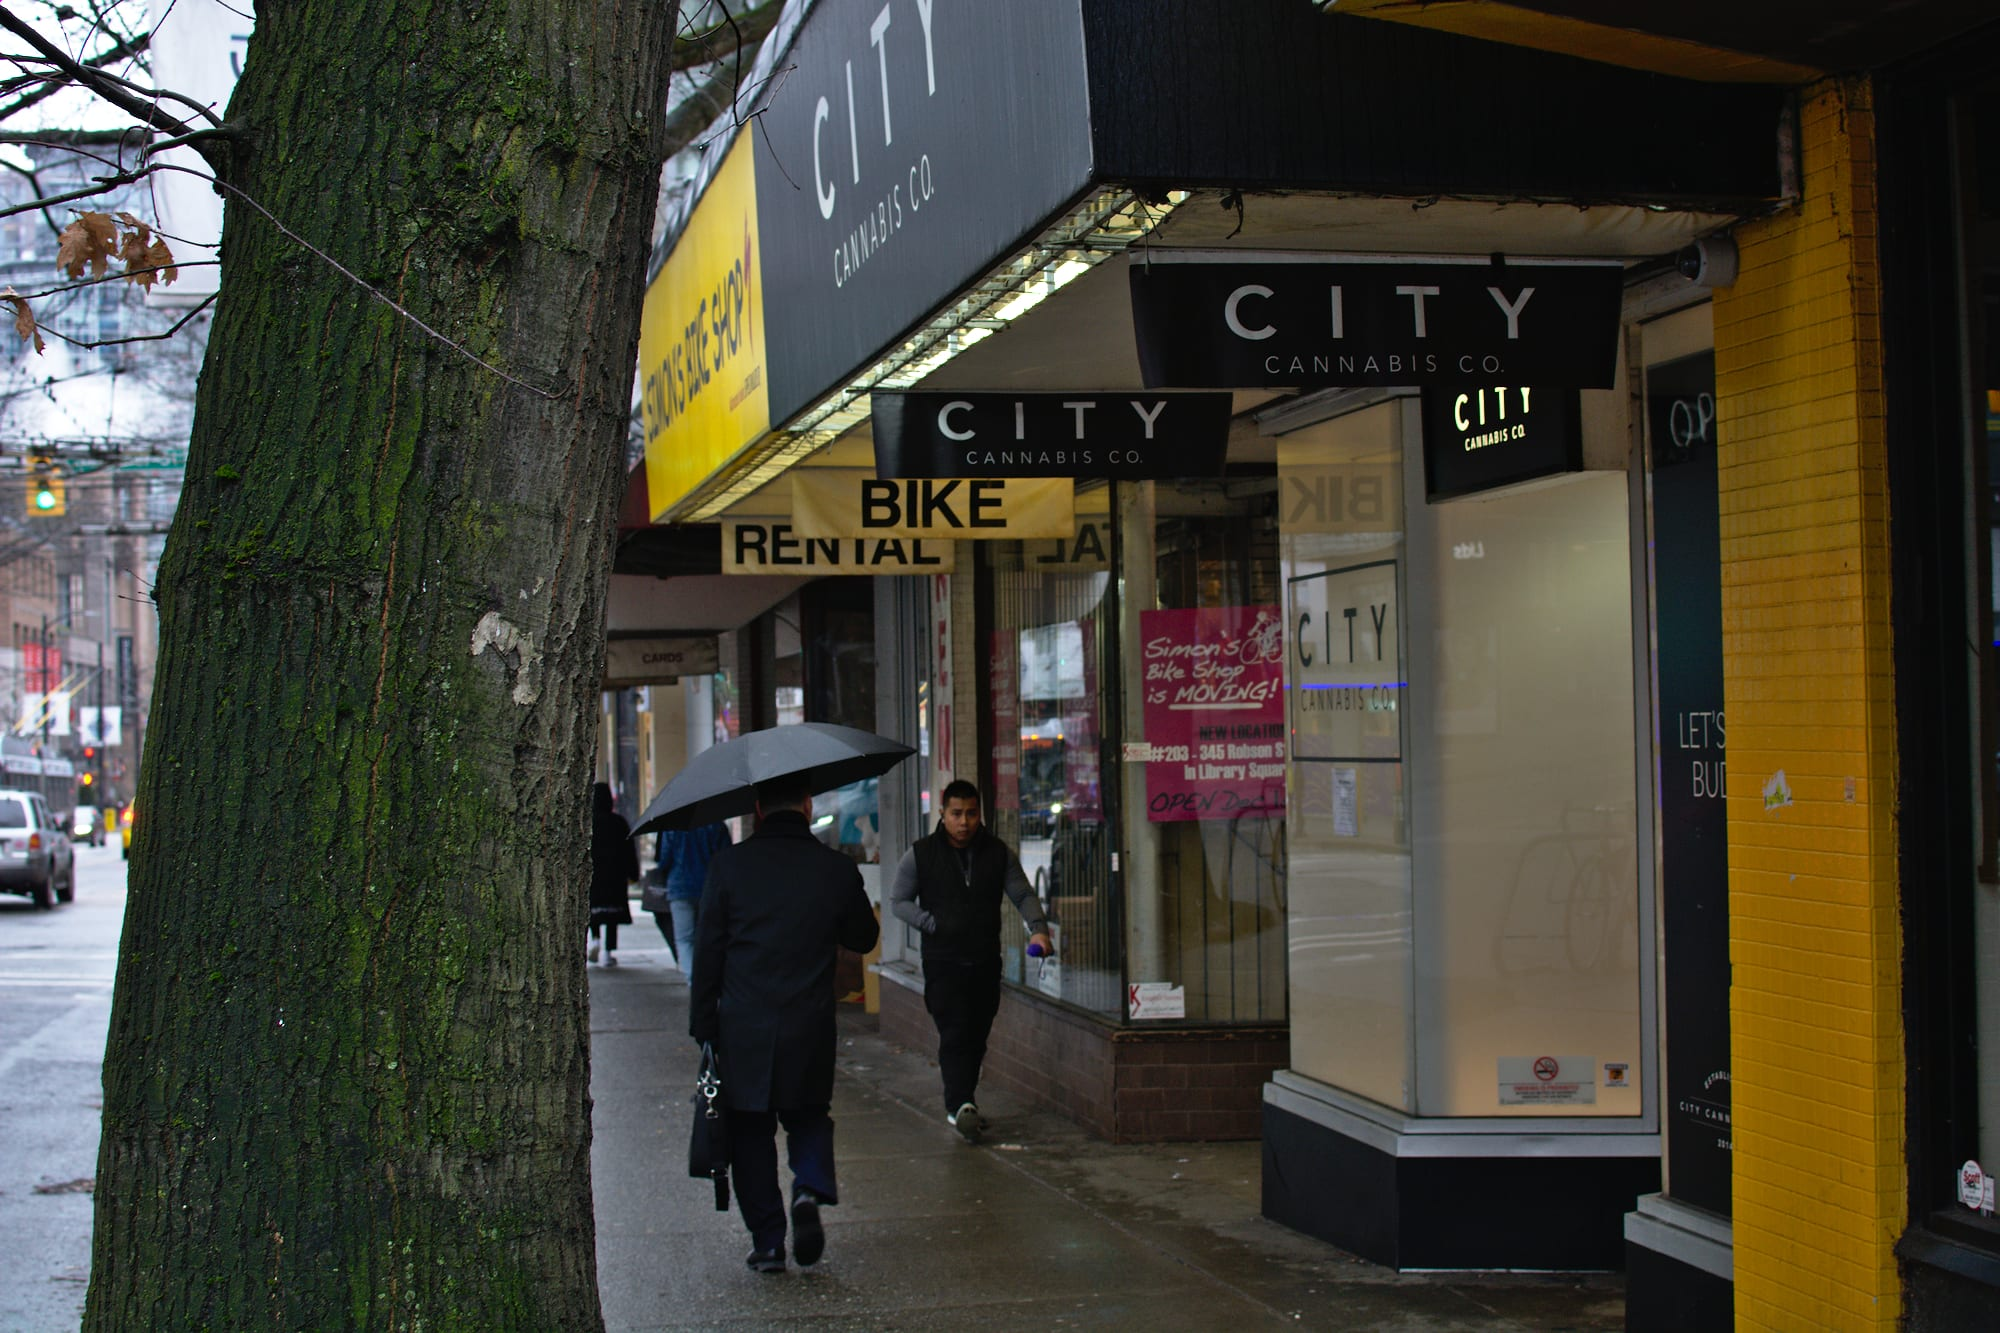 Outside of City Cannabis Co. downtown Vancouver - Commercial property value slashed by slow roll-out of cannabis stores